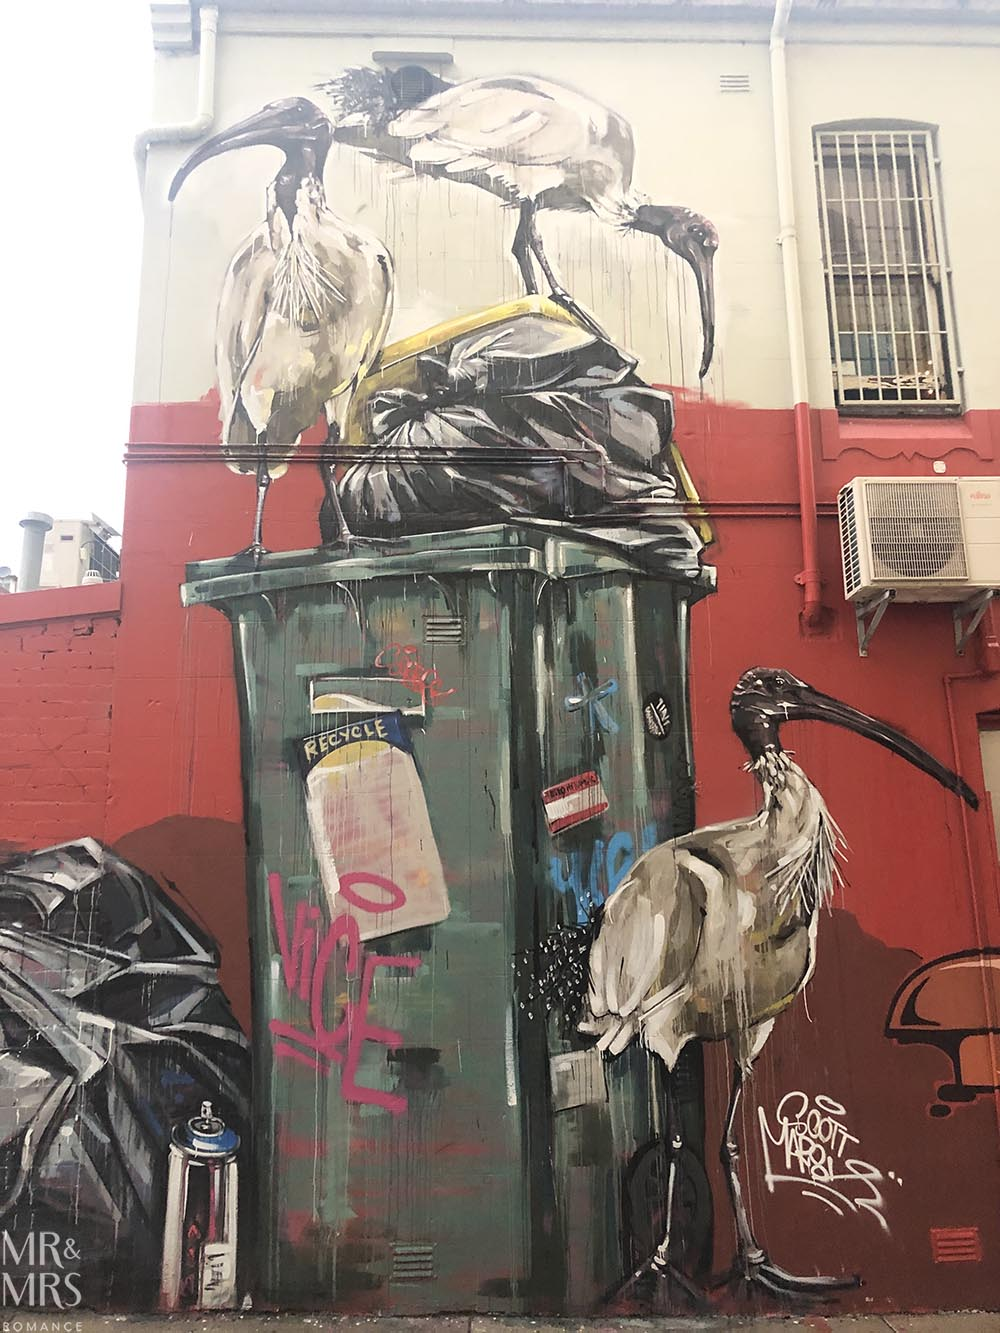 Bin Chickens - Scott Marsh